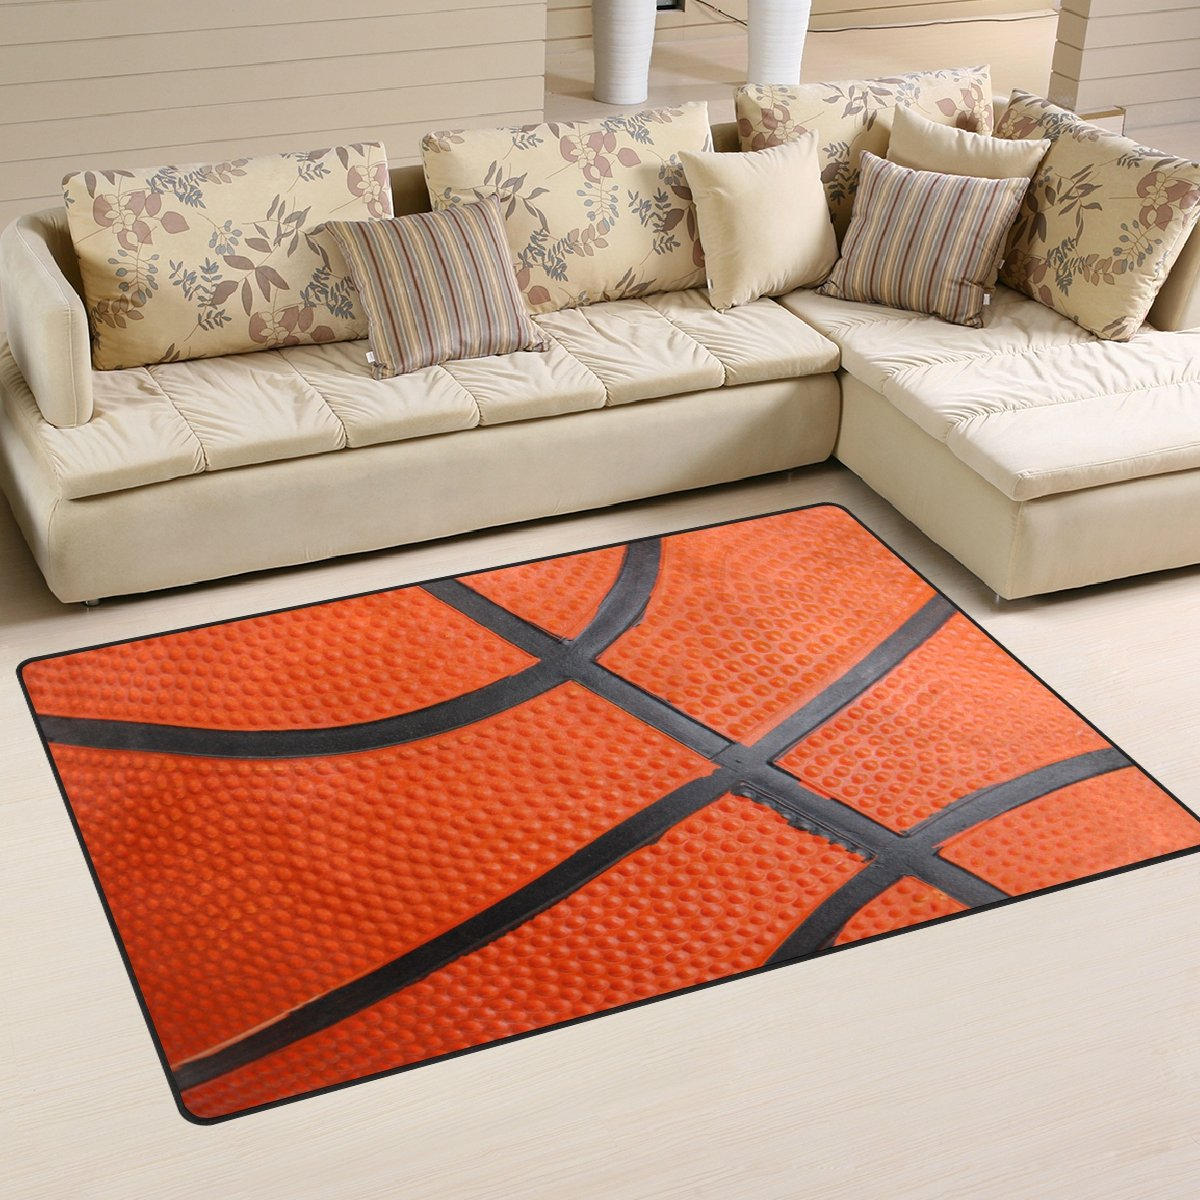 WOZO Basketball Skin Area Rug Rugs Non-Slip Floor Mat Doormats Living Room Bedroom 60 x 39 inches g2106592p146c161s241